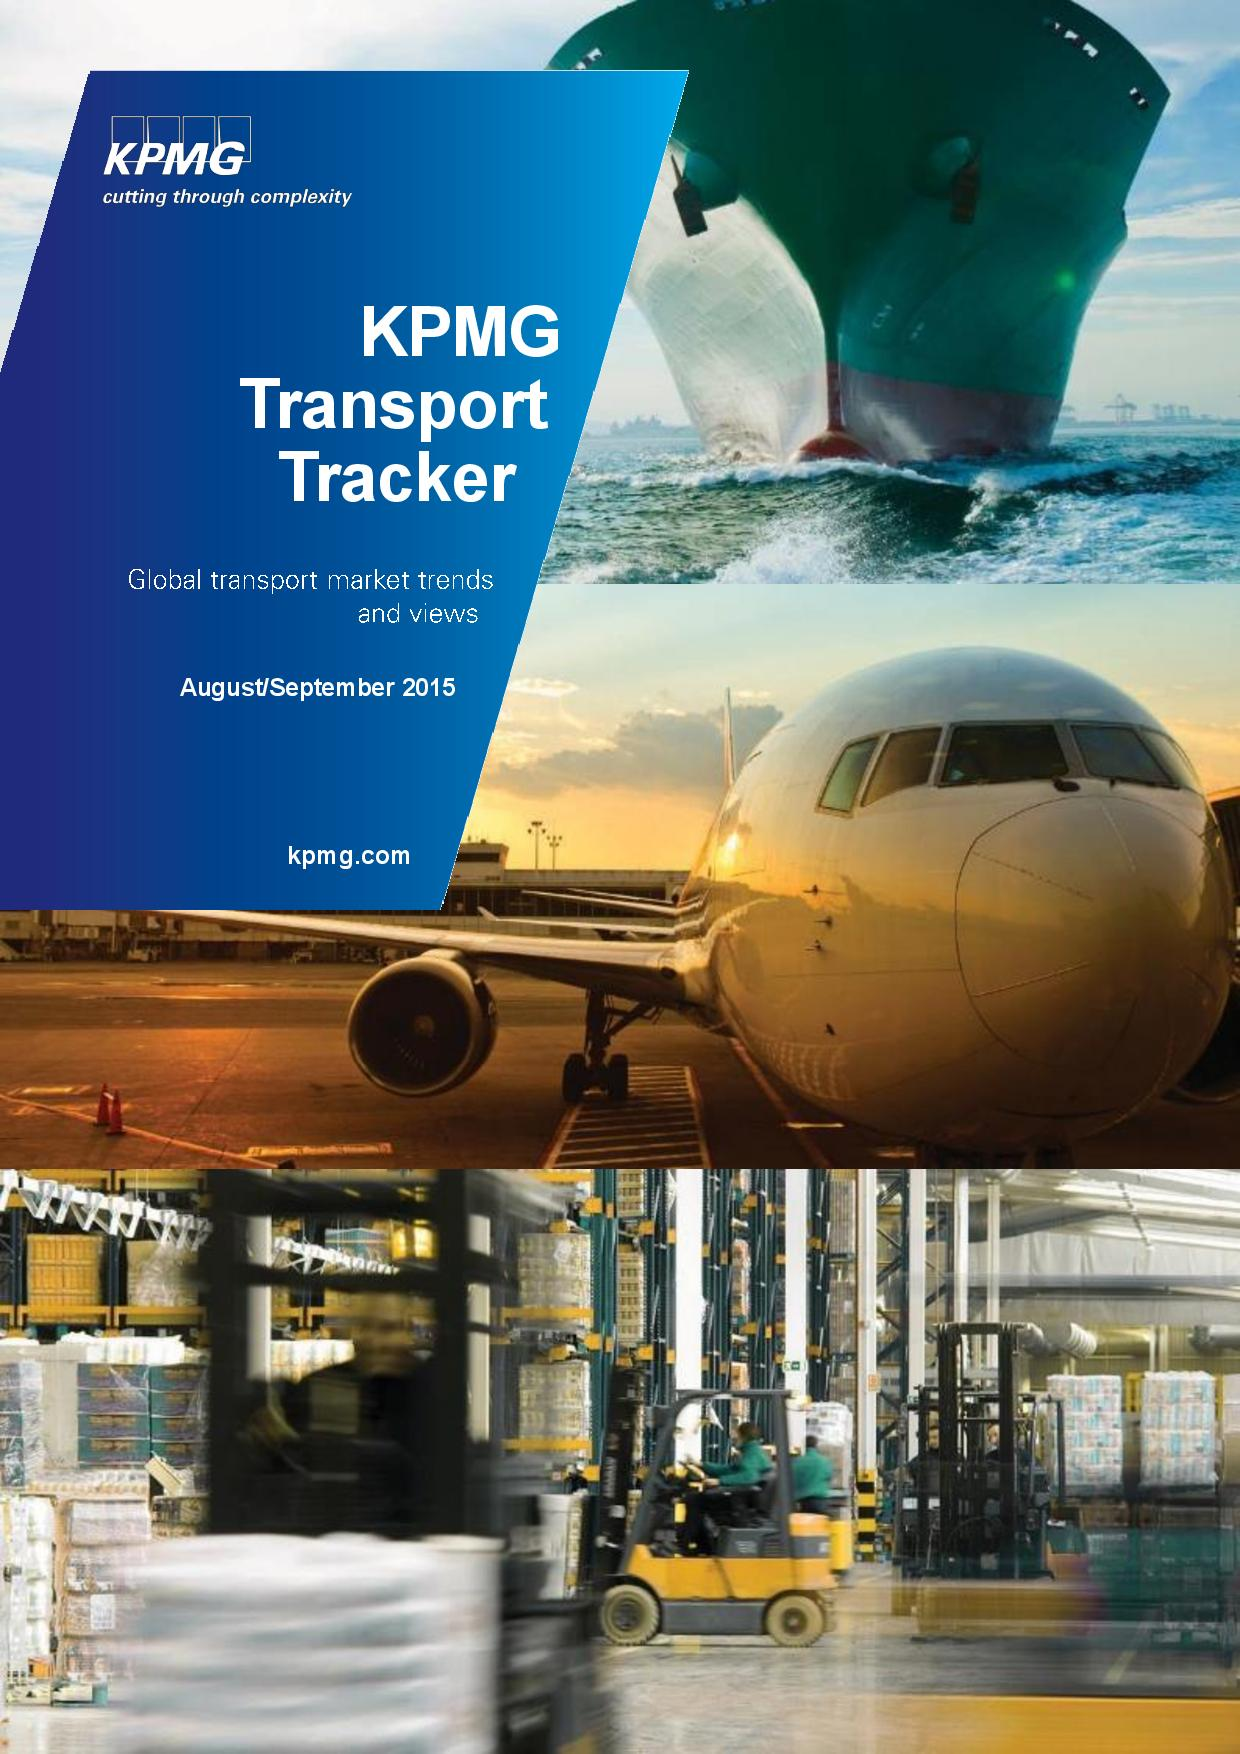 KPMG Transport Tracker